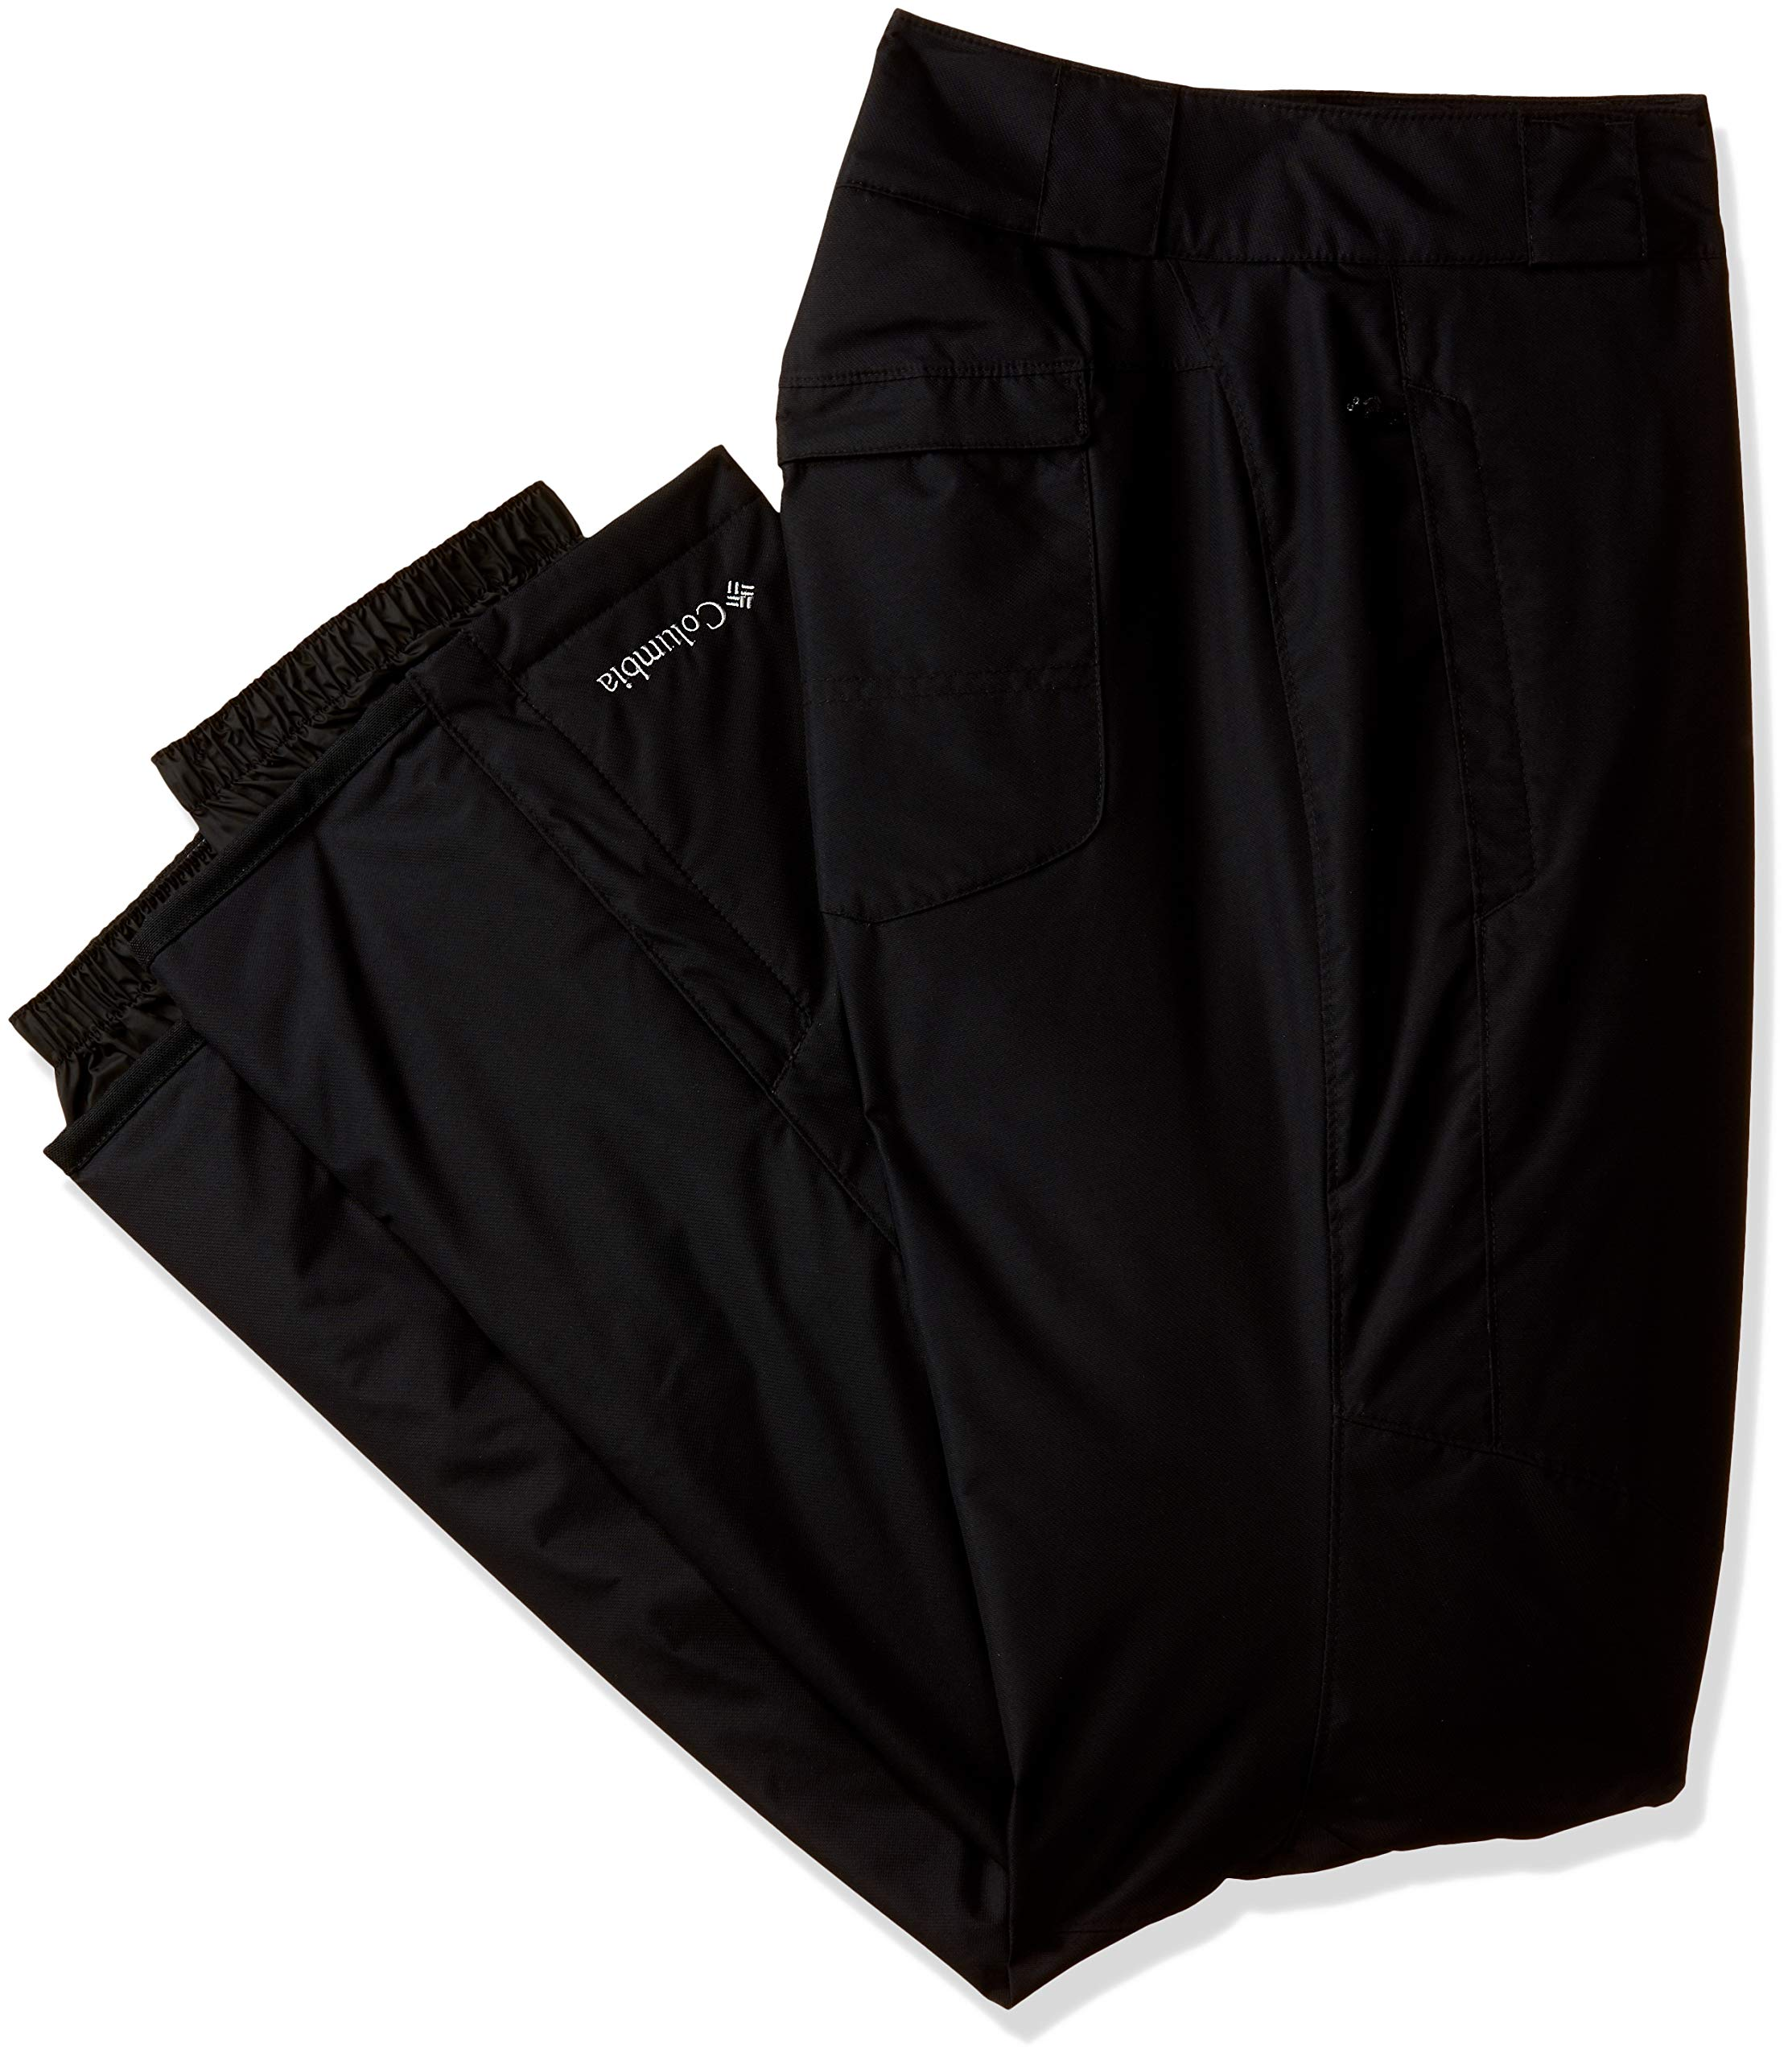 Columbia Bugaboo Ii Pants, X-Small x Regular, Black